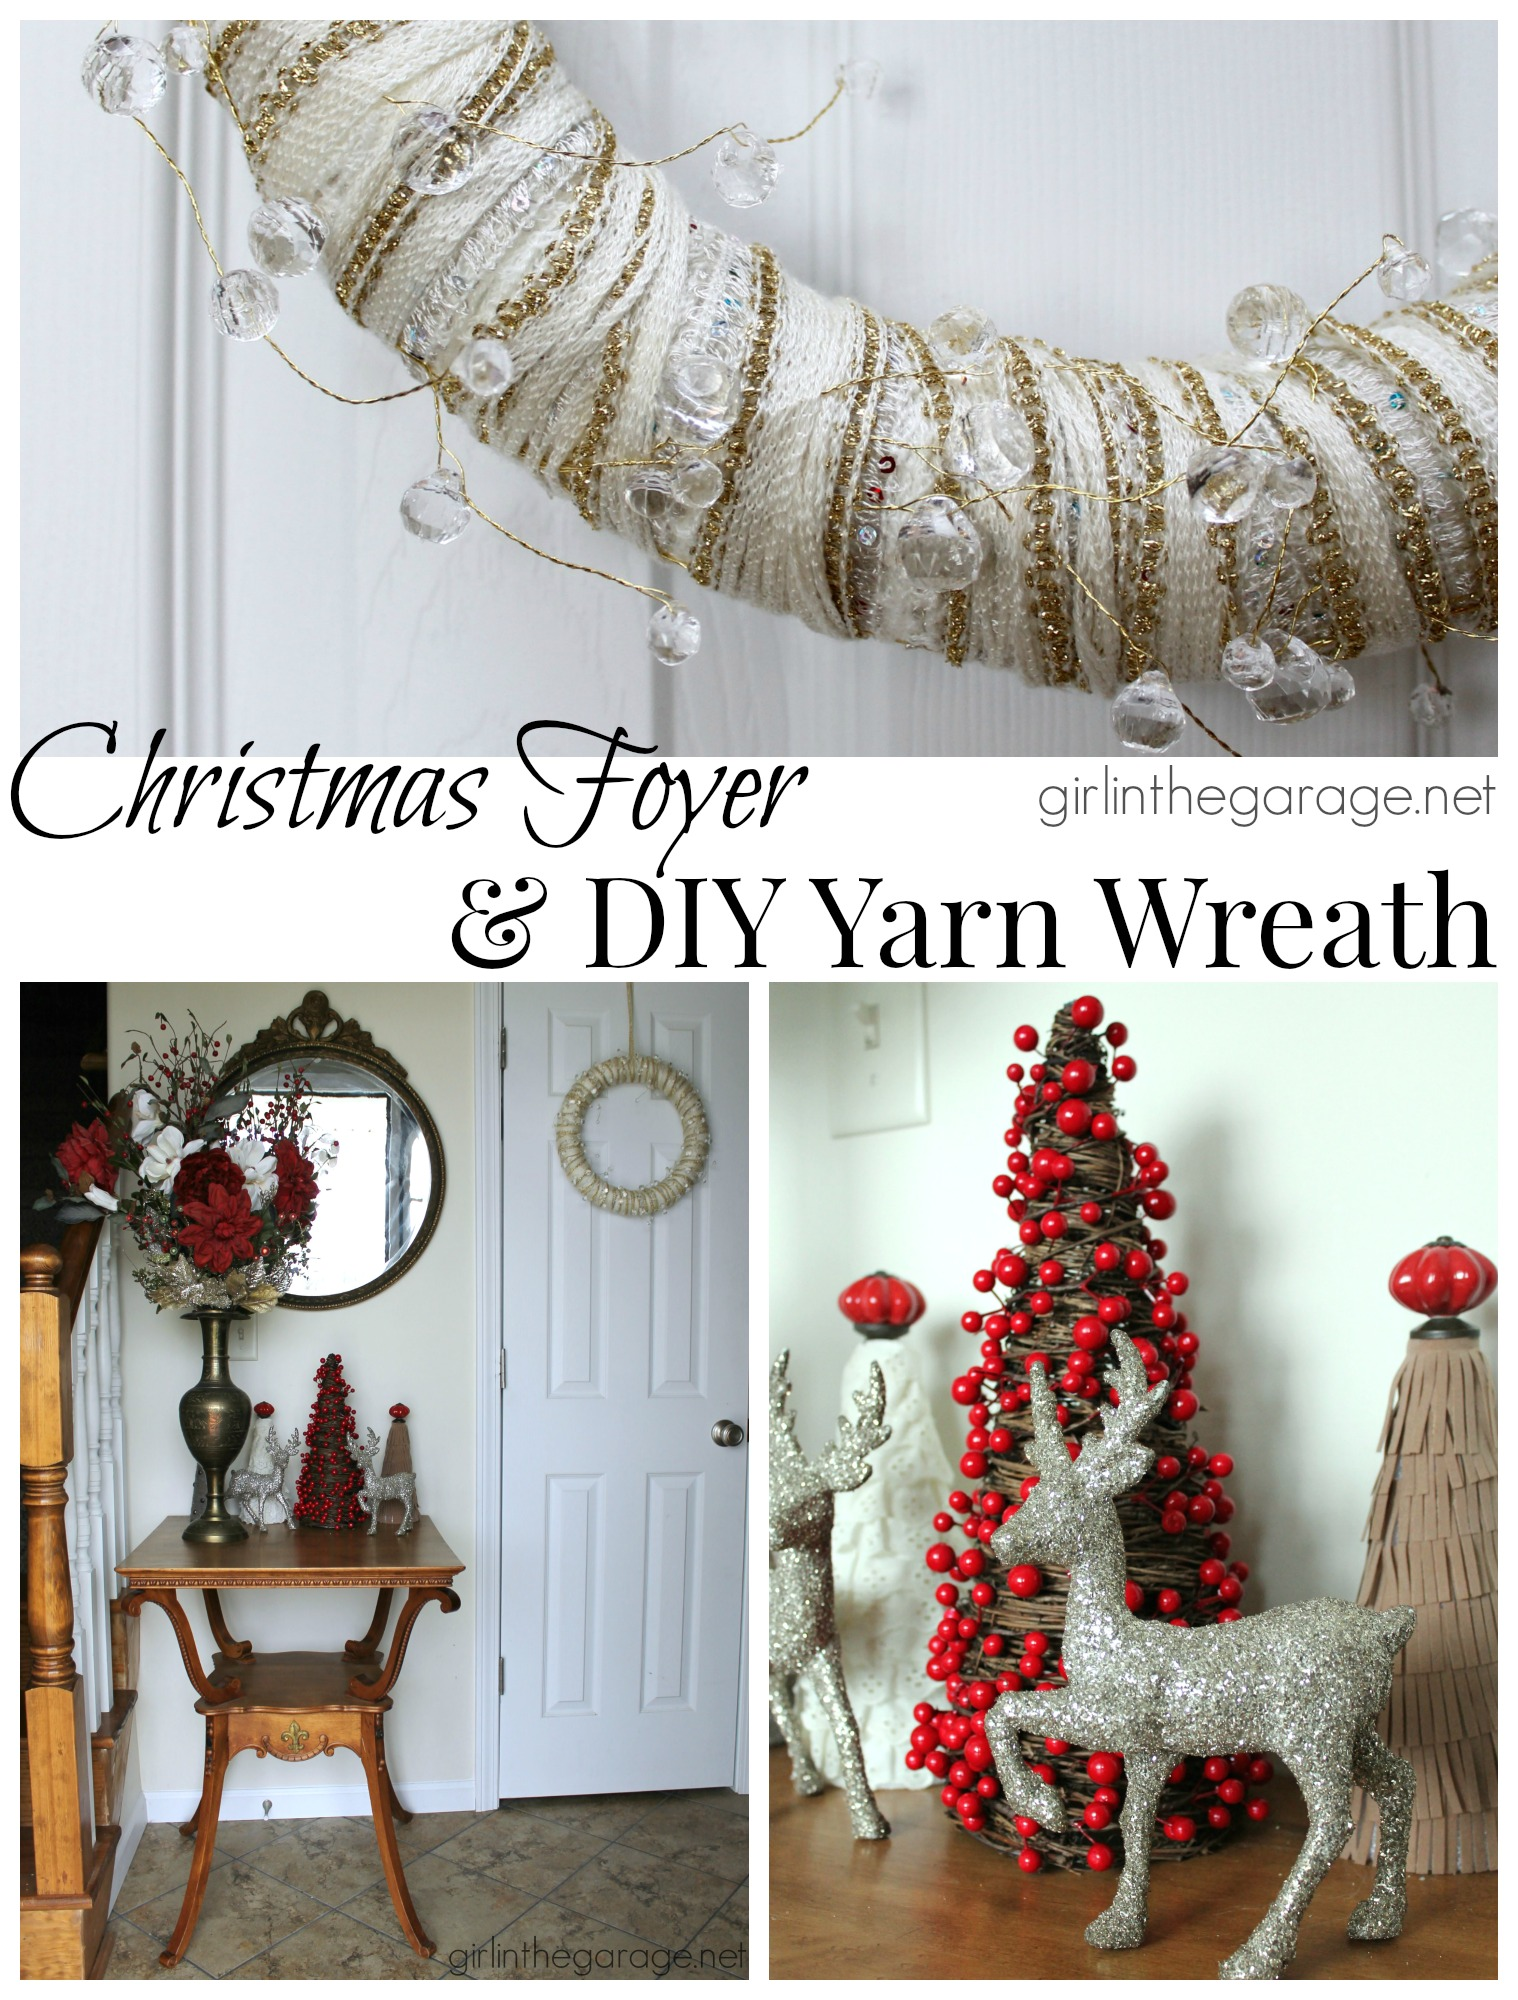 Foyer Diy Guide : Christmas foyer and diy yarn wreath welcome home tour